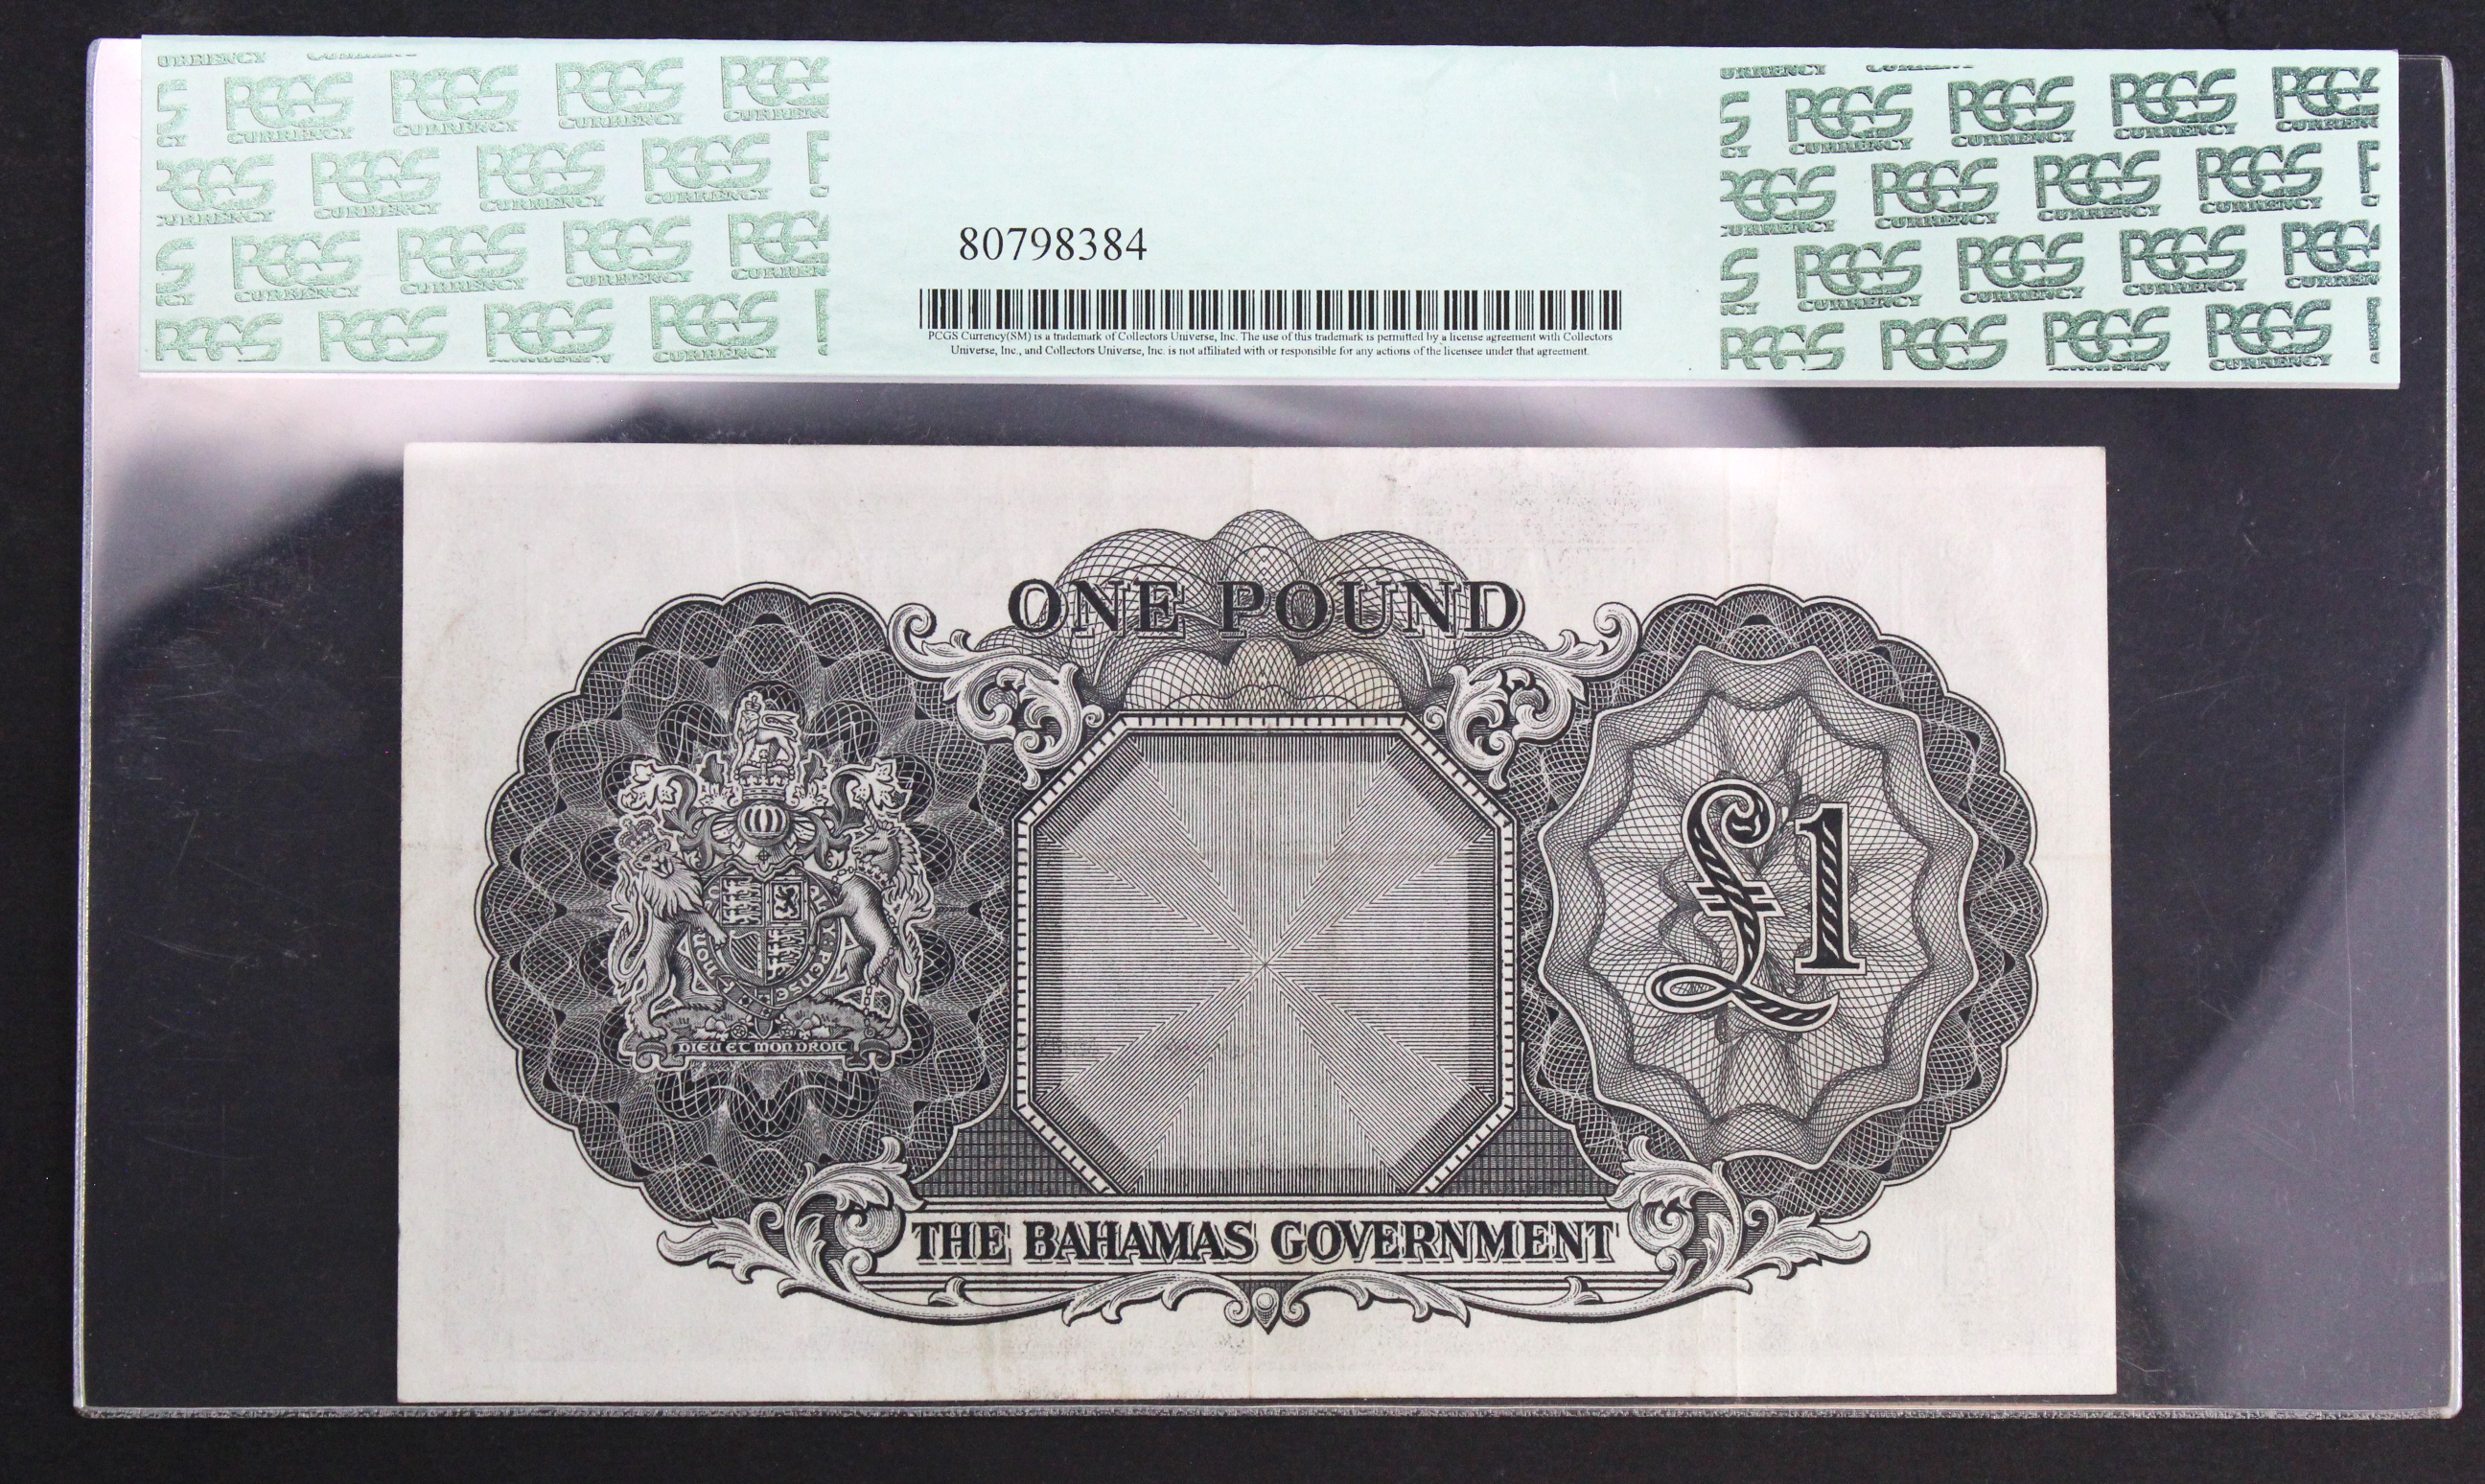 Bahamas 1 Pound issued 1953 (1963), portrait Queen Elizabeth II at right, serial A/5 184795 (TBB - Image 2 of 2